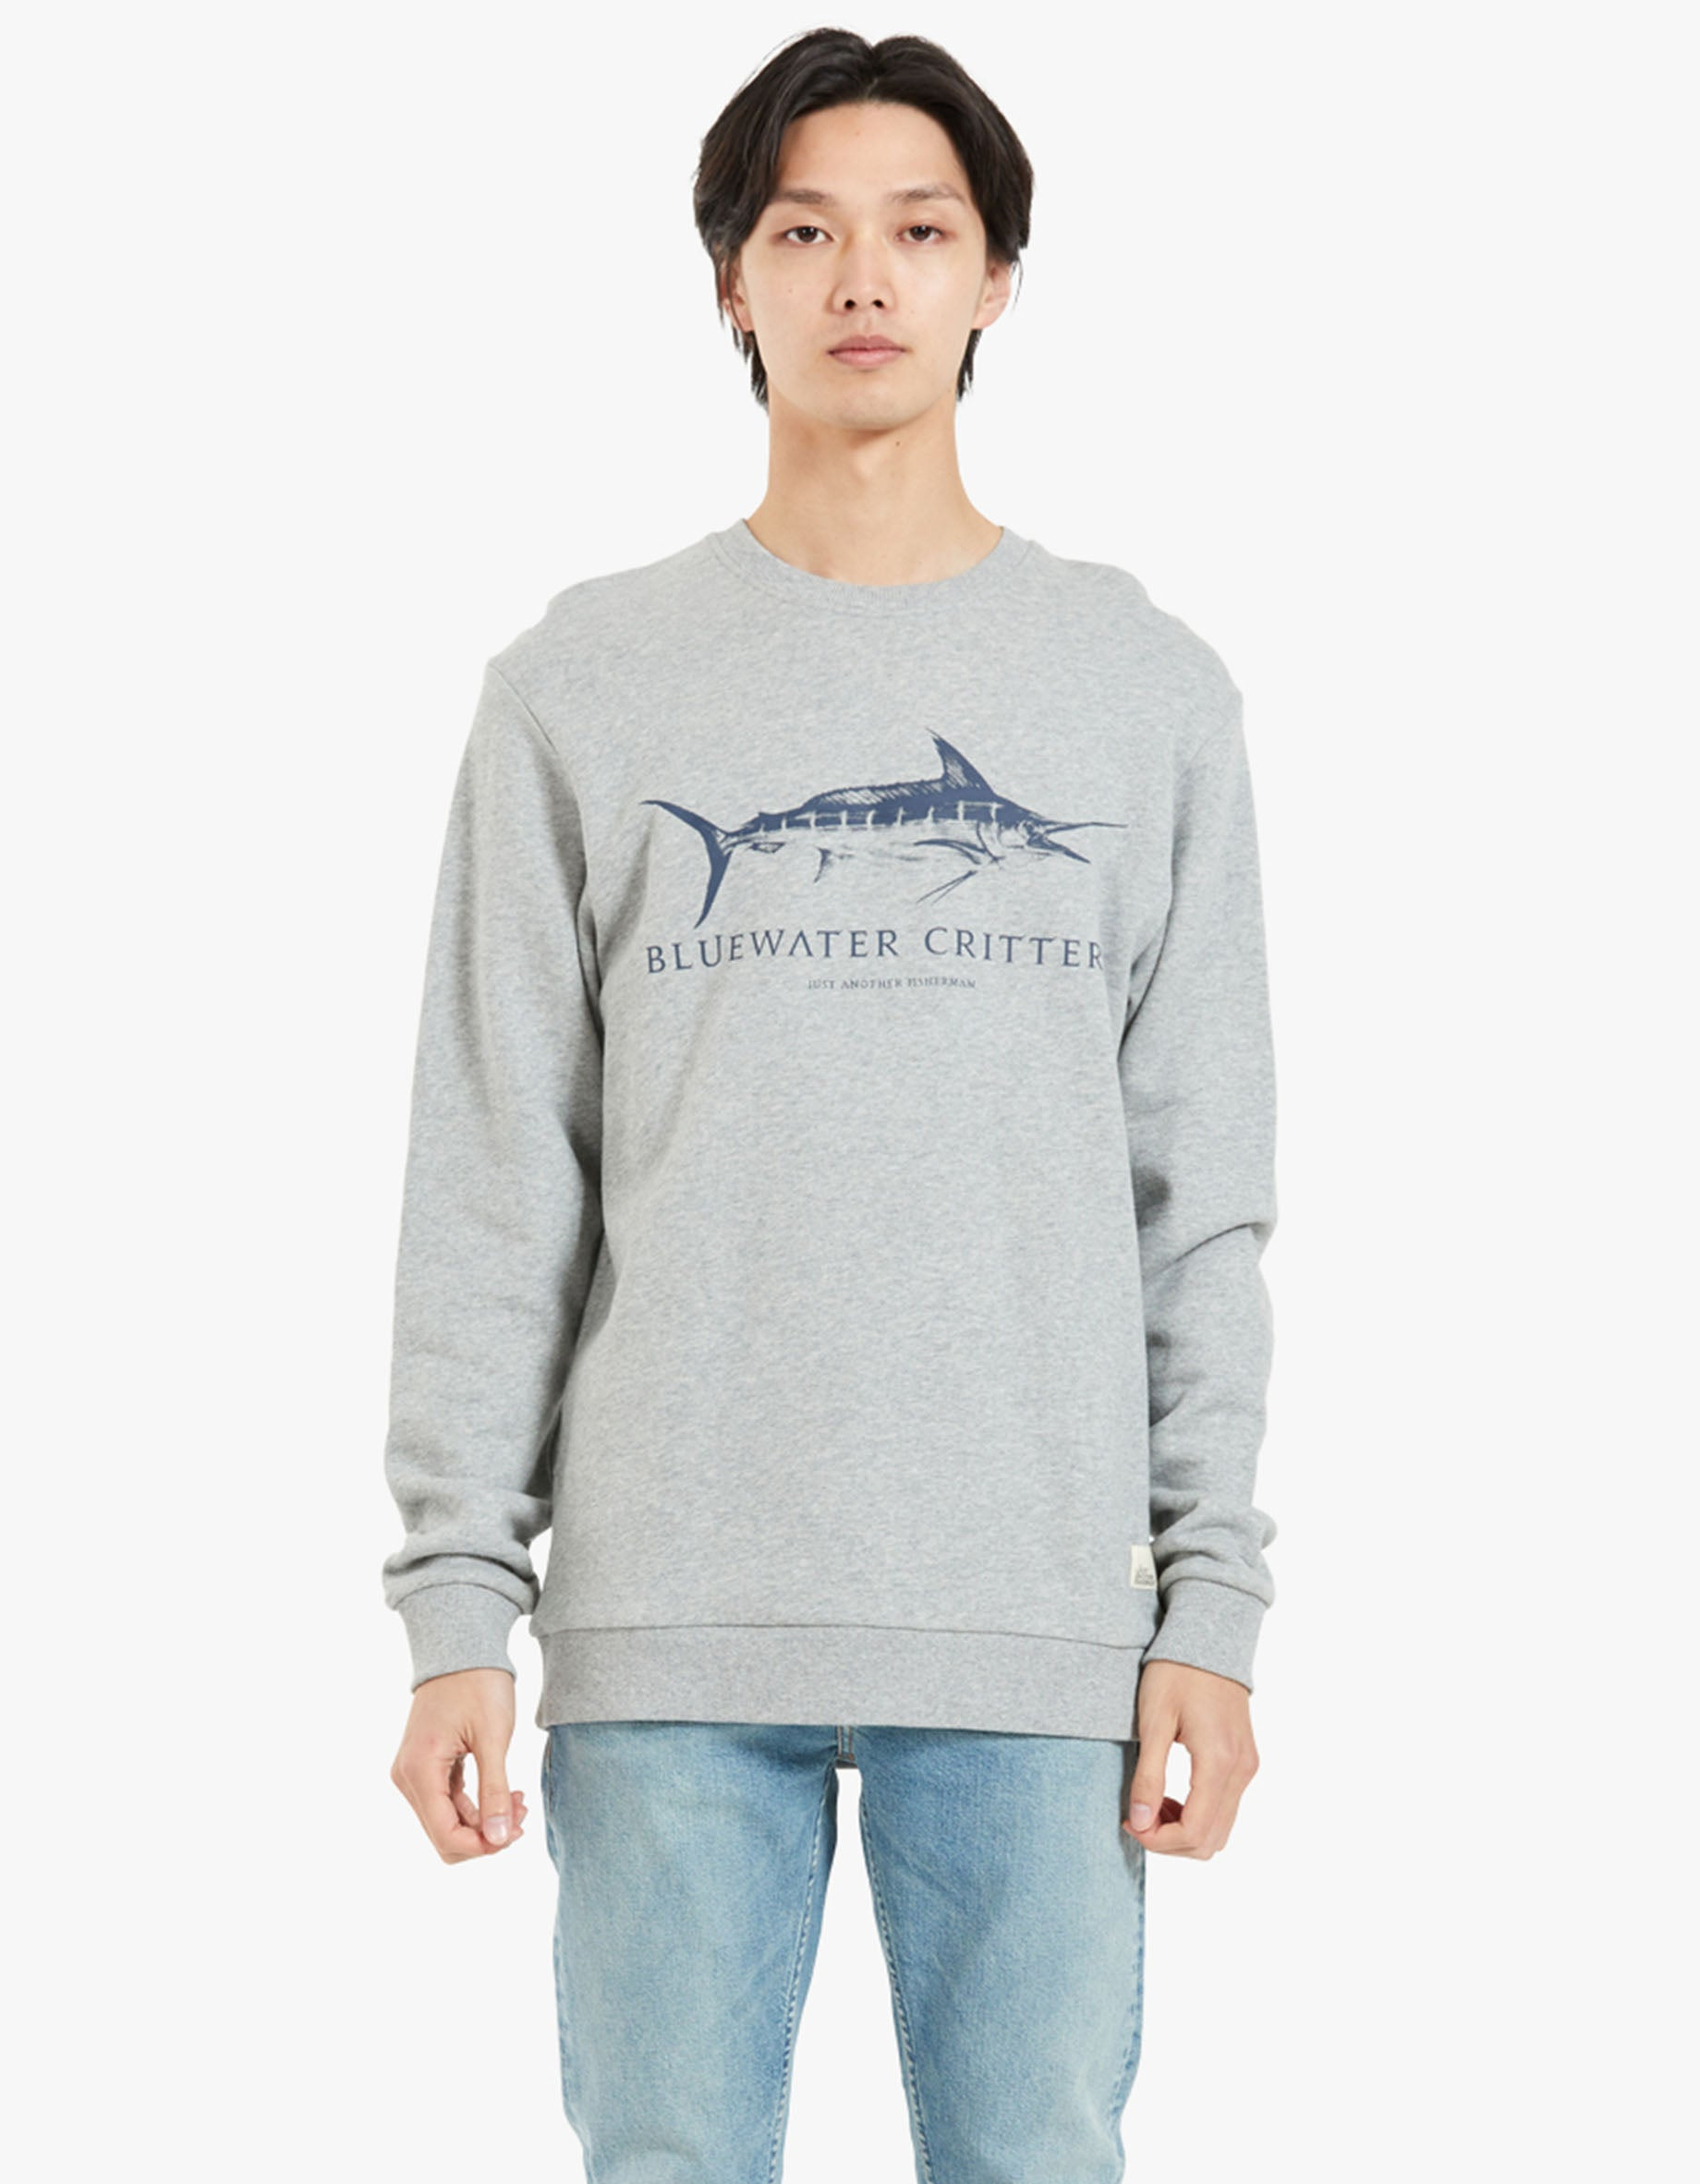 Bluewater Critters Crew - Grey Marle